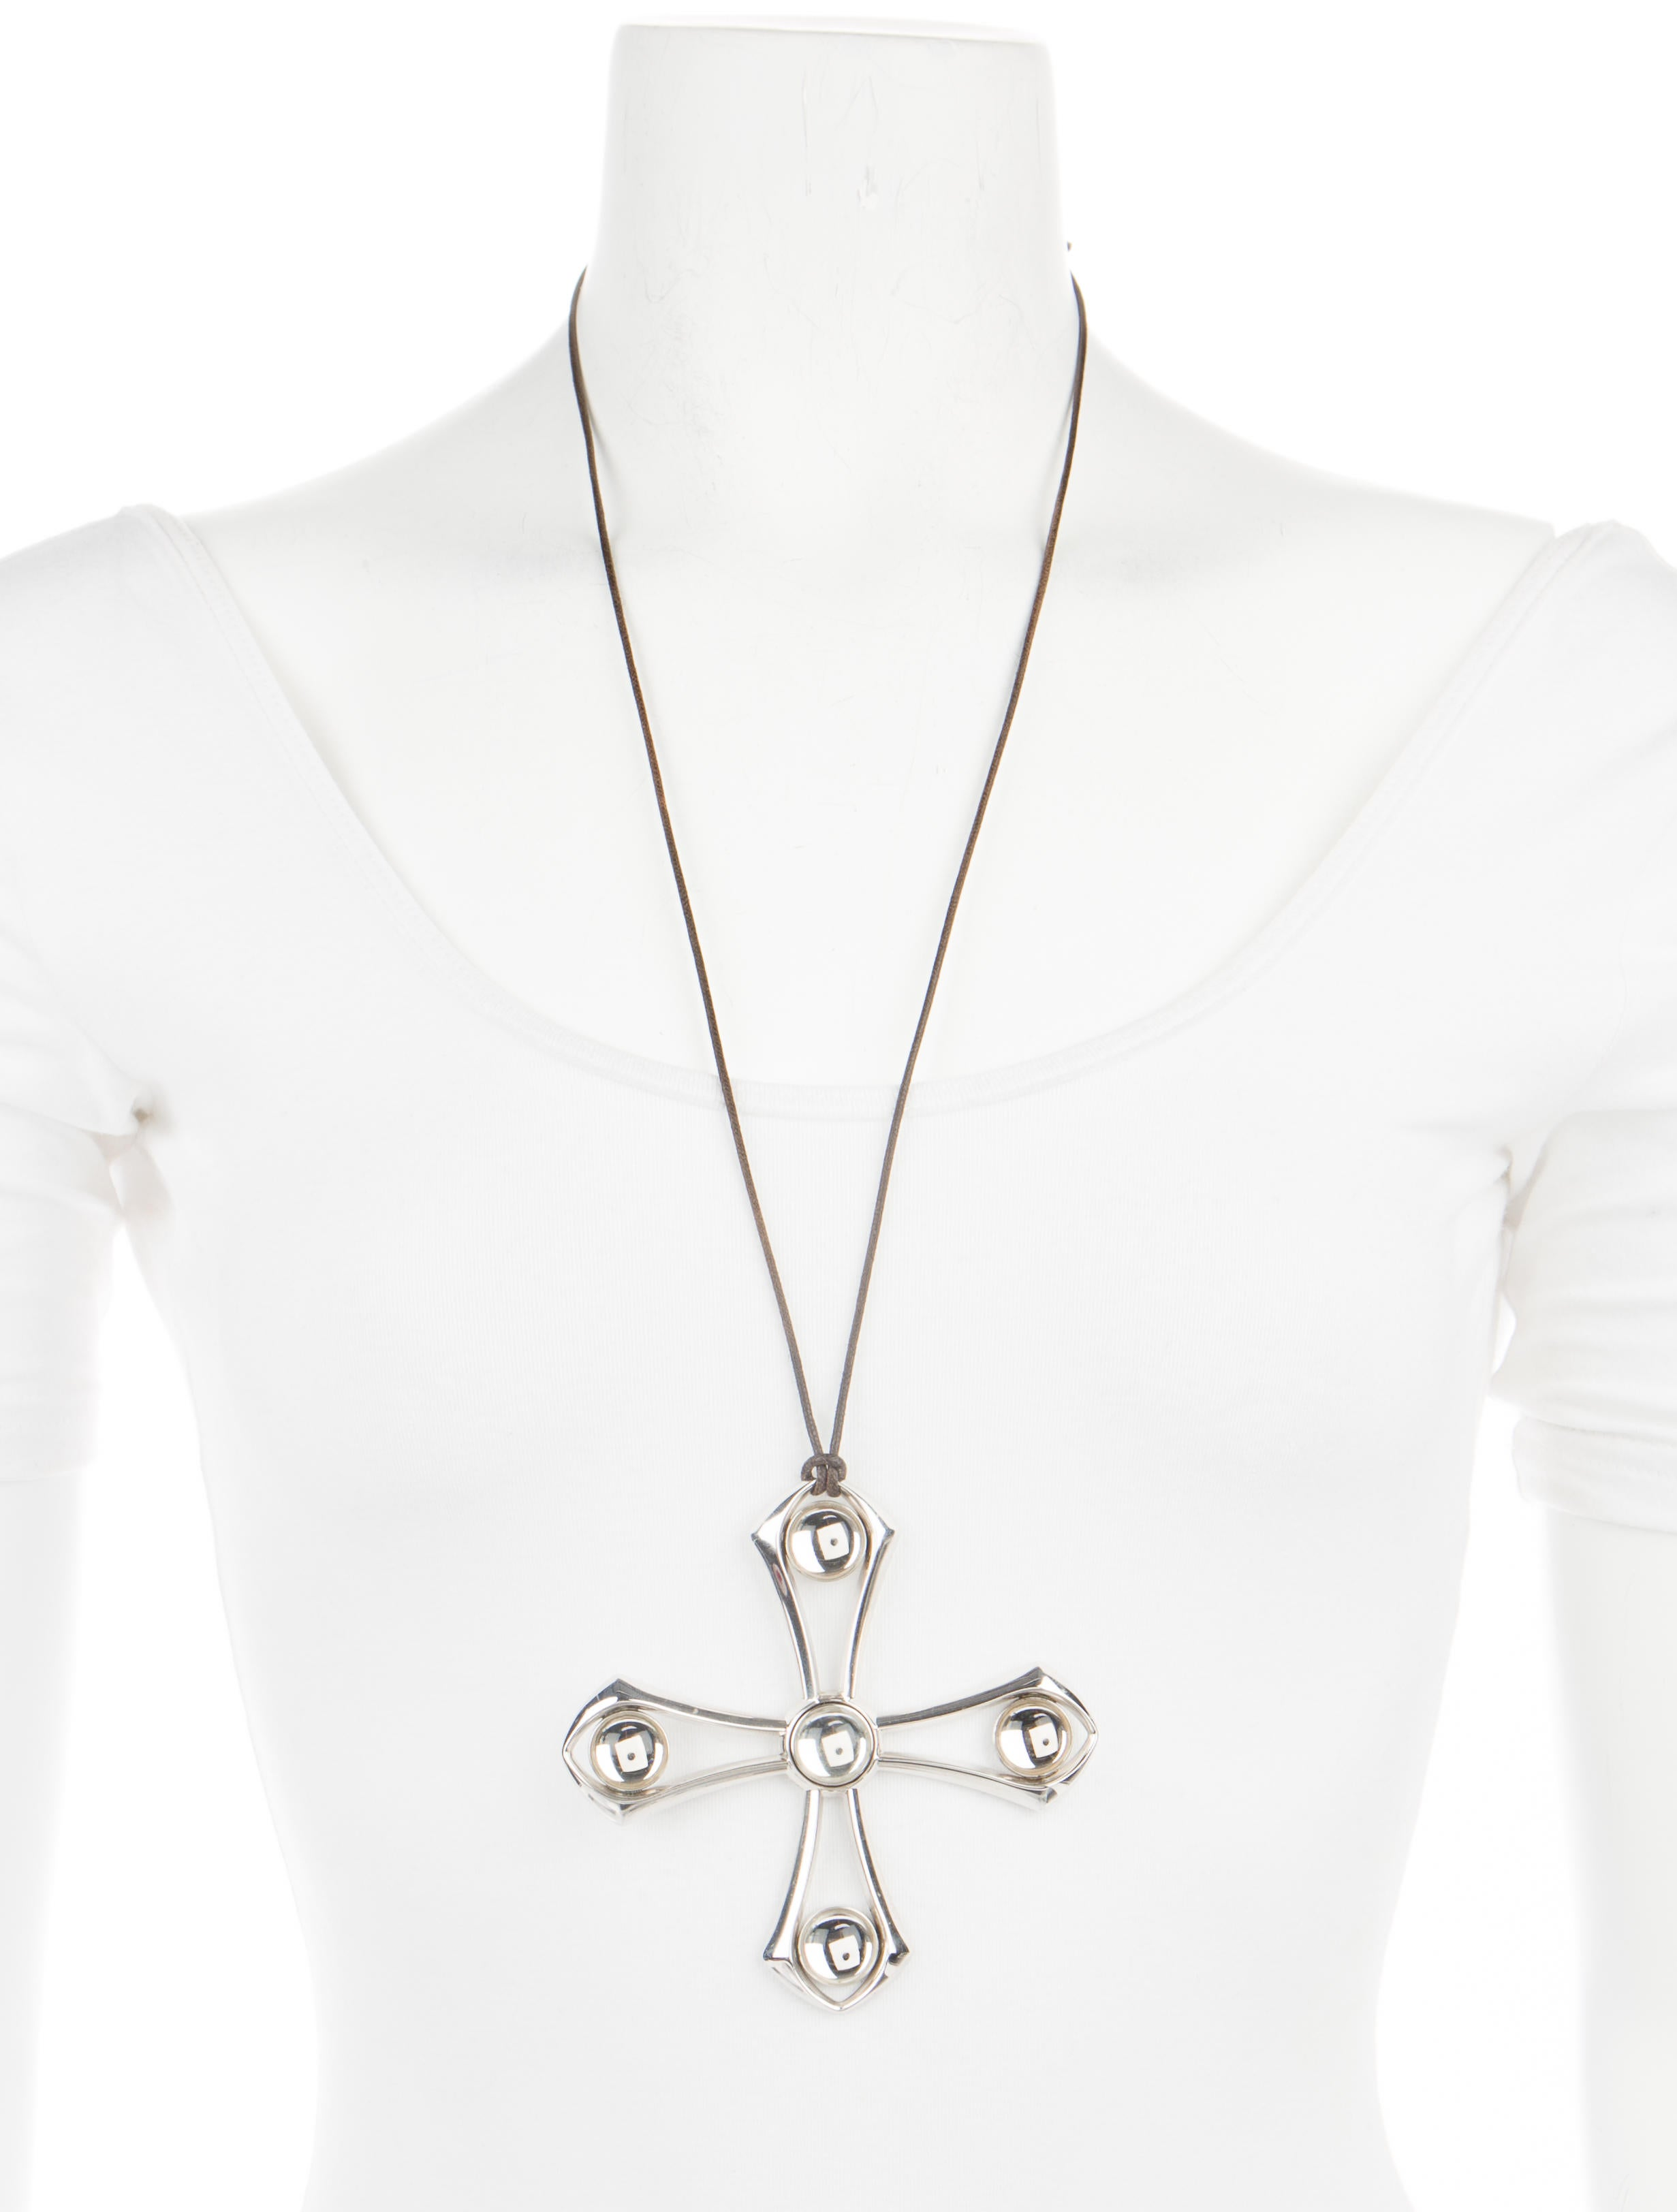 Lalique osmose large cross pendant necklace necklaces wlq23333 osmose large cross pendant necklace aloadofball Gallery